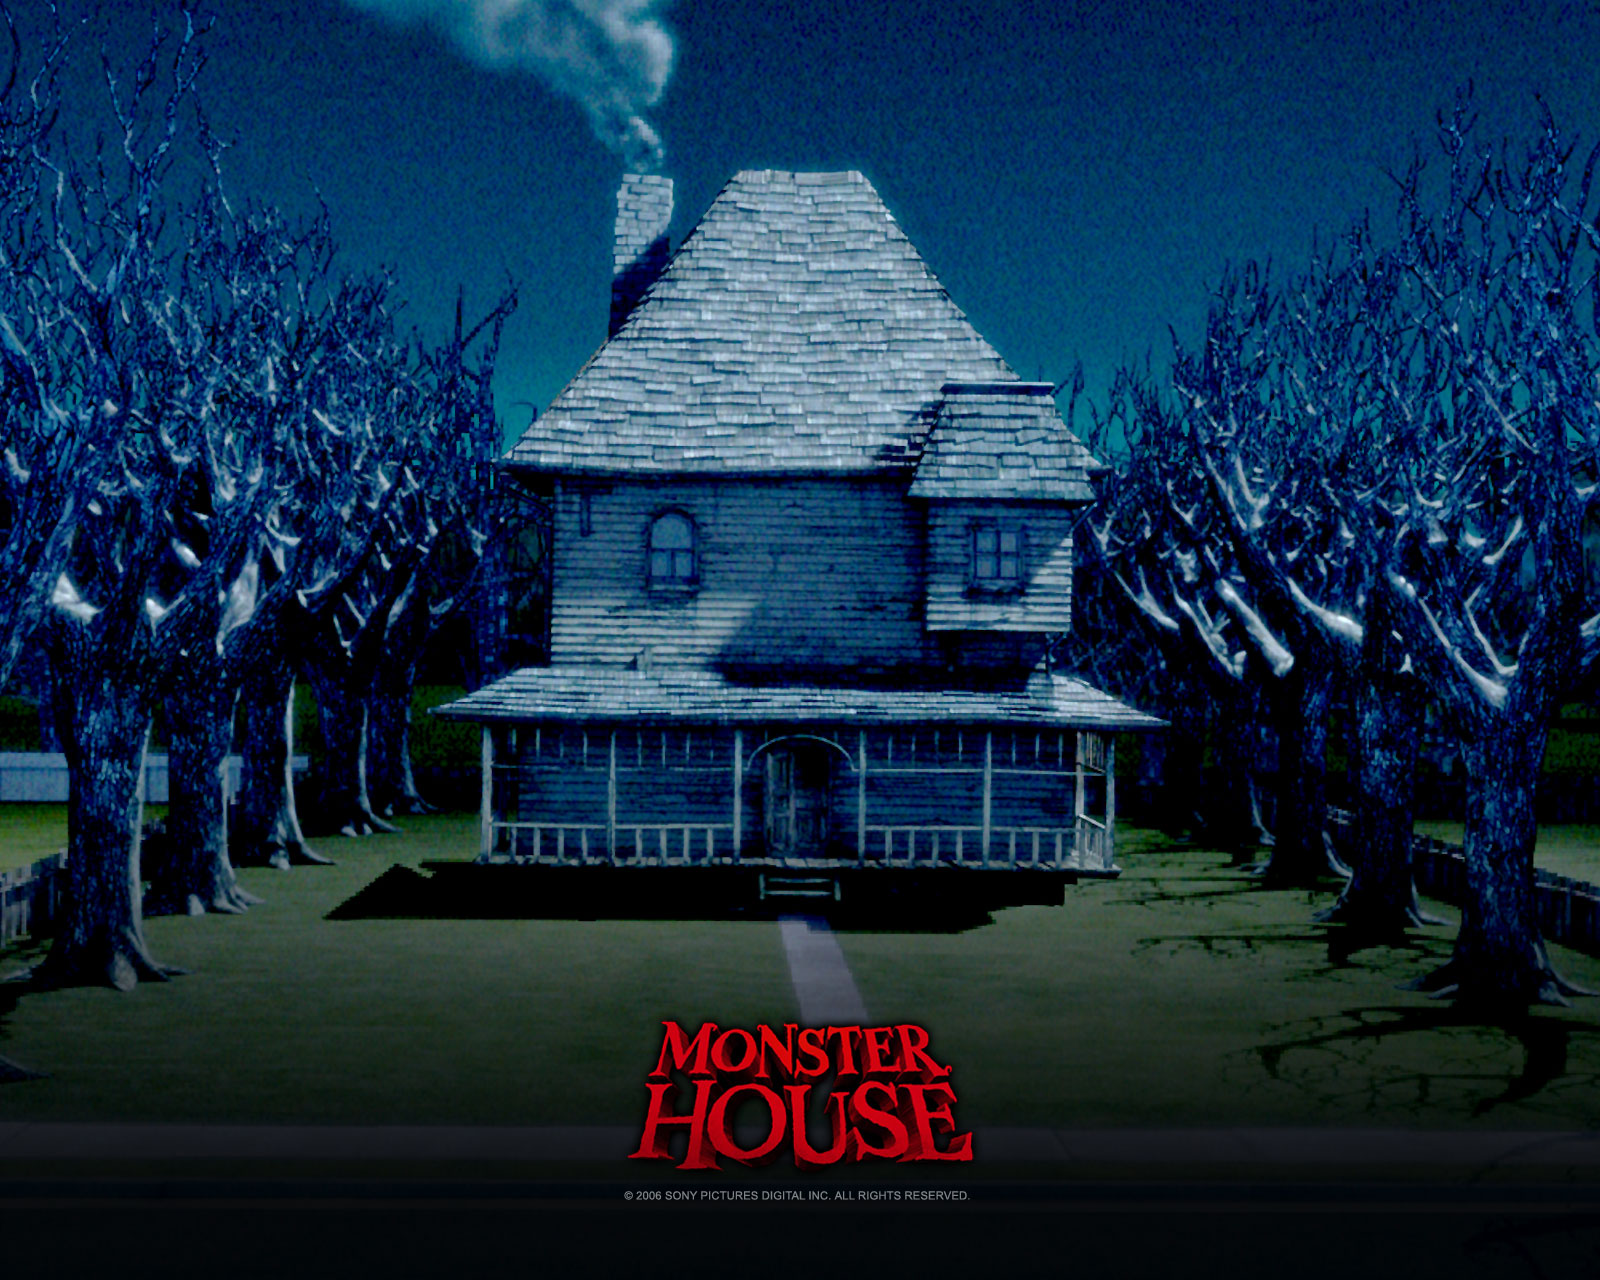 monster house movie - photo #16